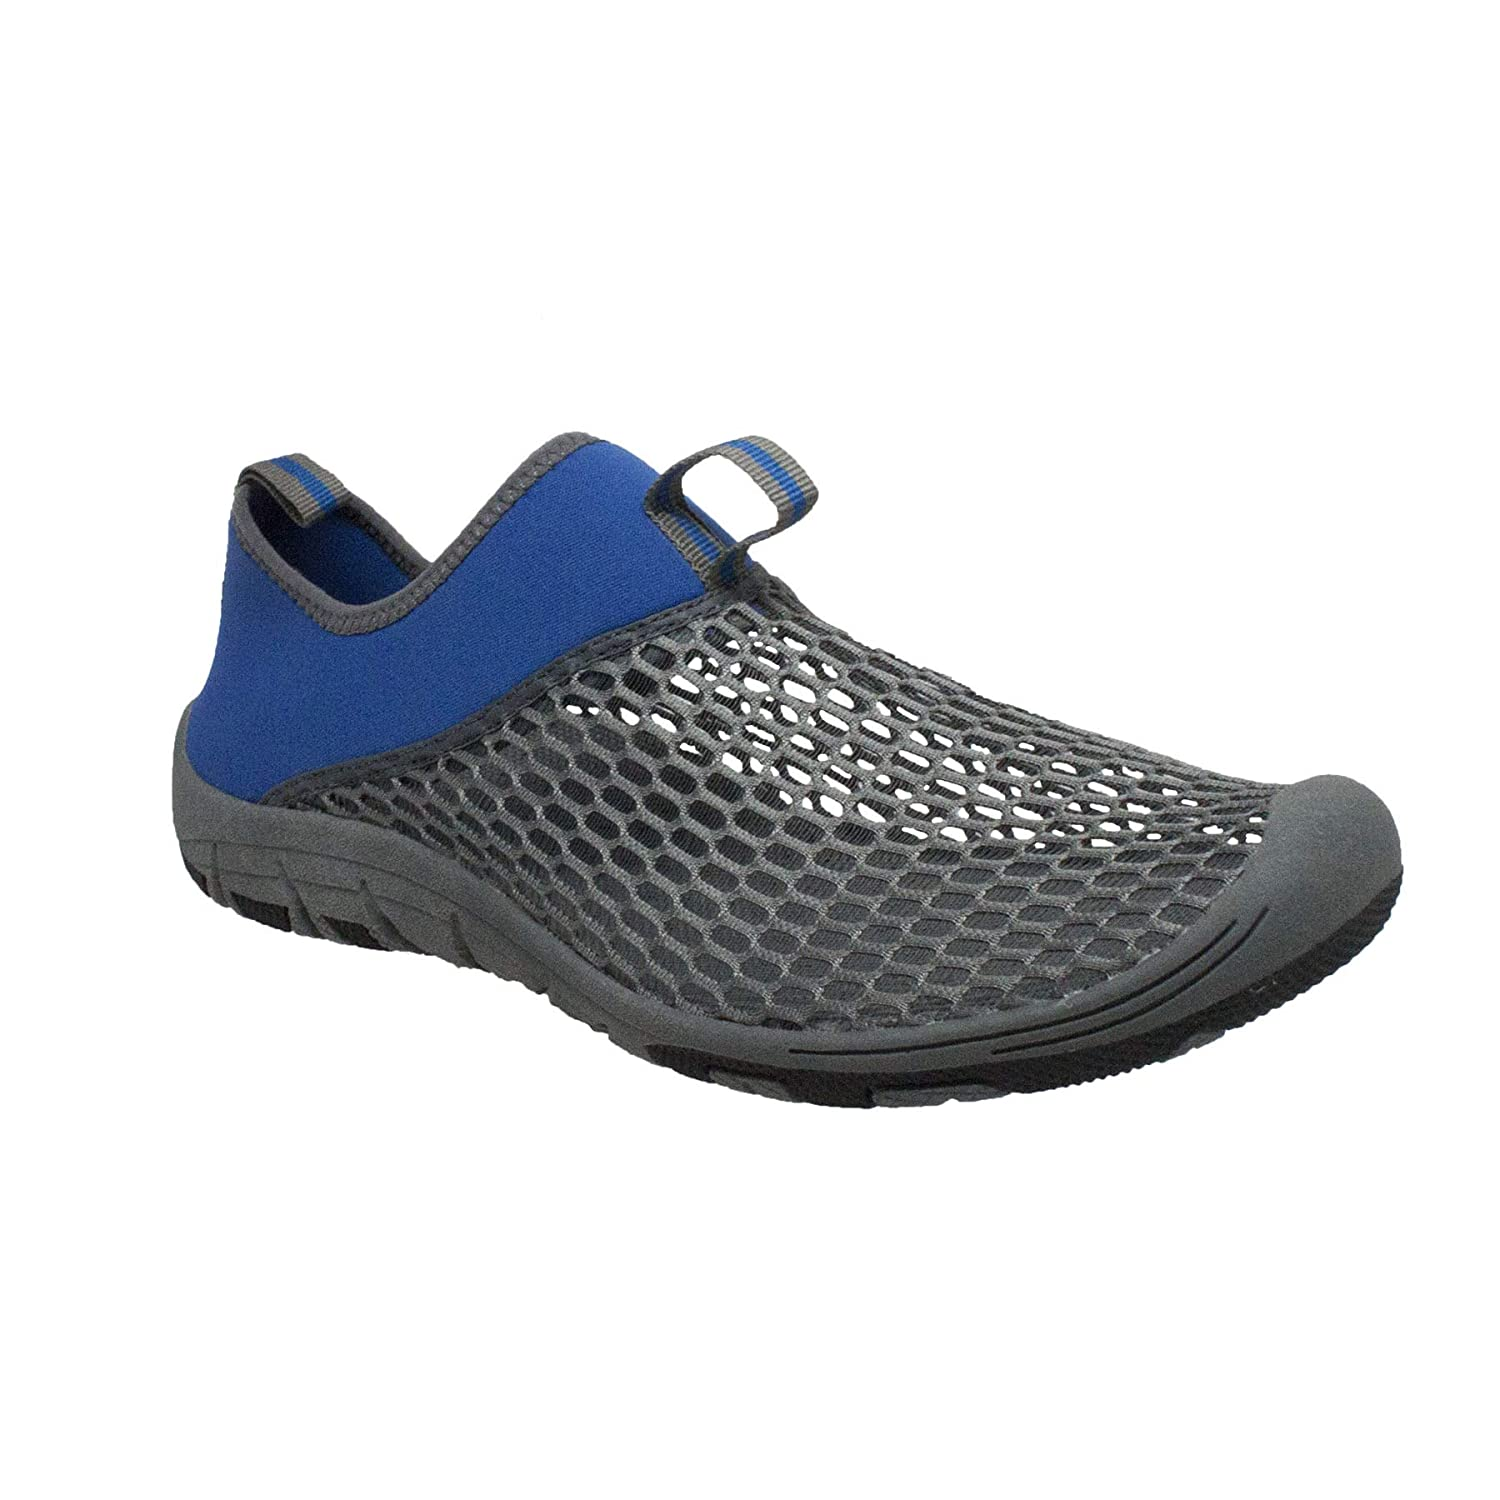 Surfing /& Snorkeling Must Have Scuba Gear for Water Sports RocSoc: Water Shoes for Men Aqua Shoes /& Beach Shoes for Kayaking Swimming